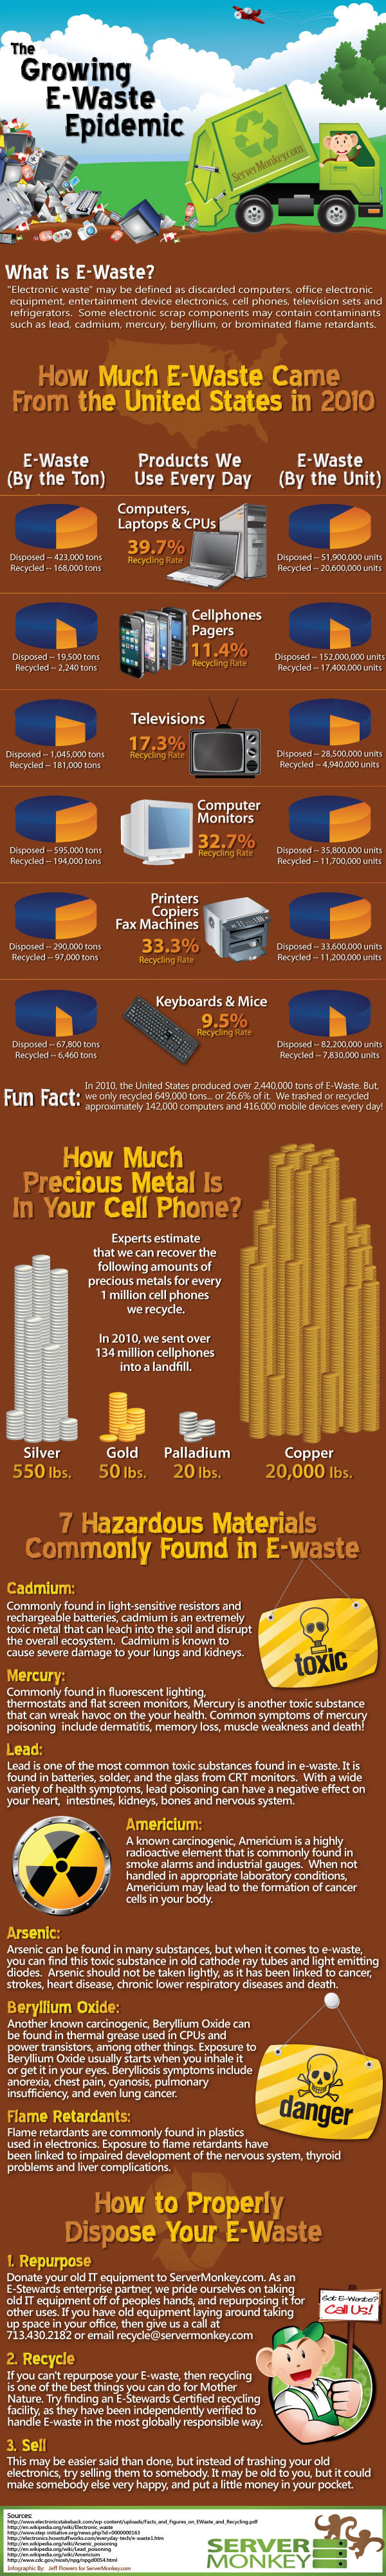 The Growing E-Waste Epidemic [Infographic]